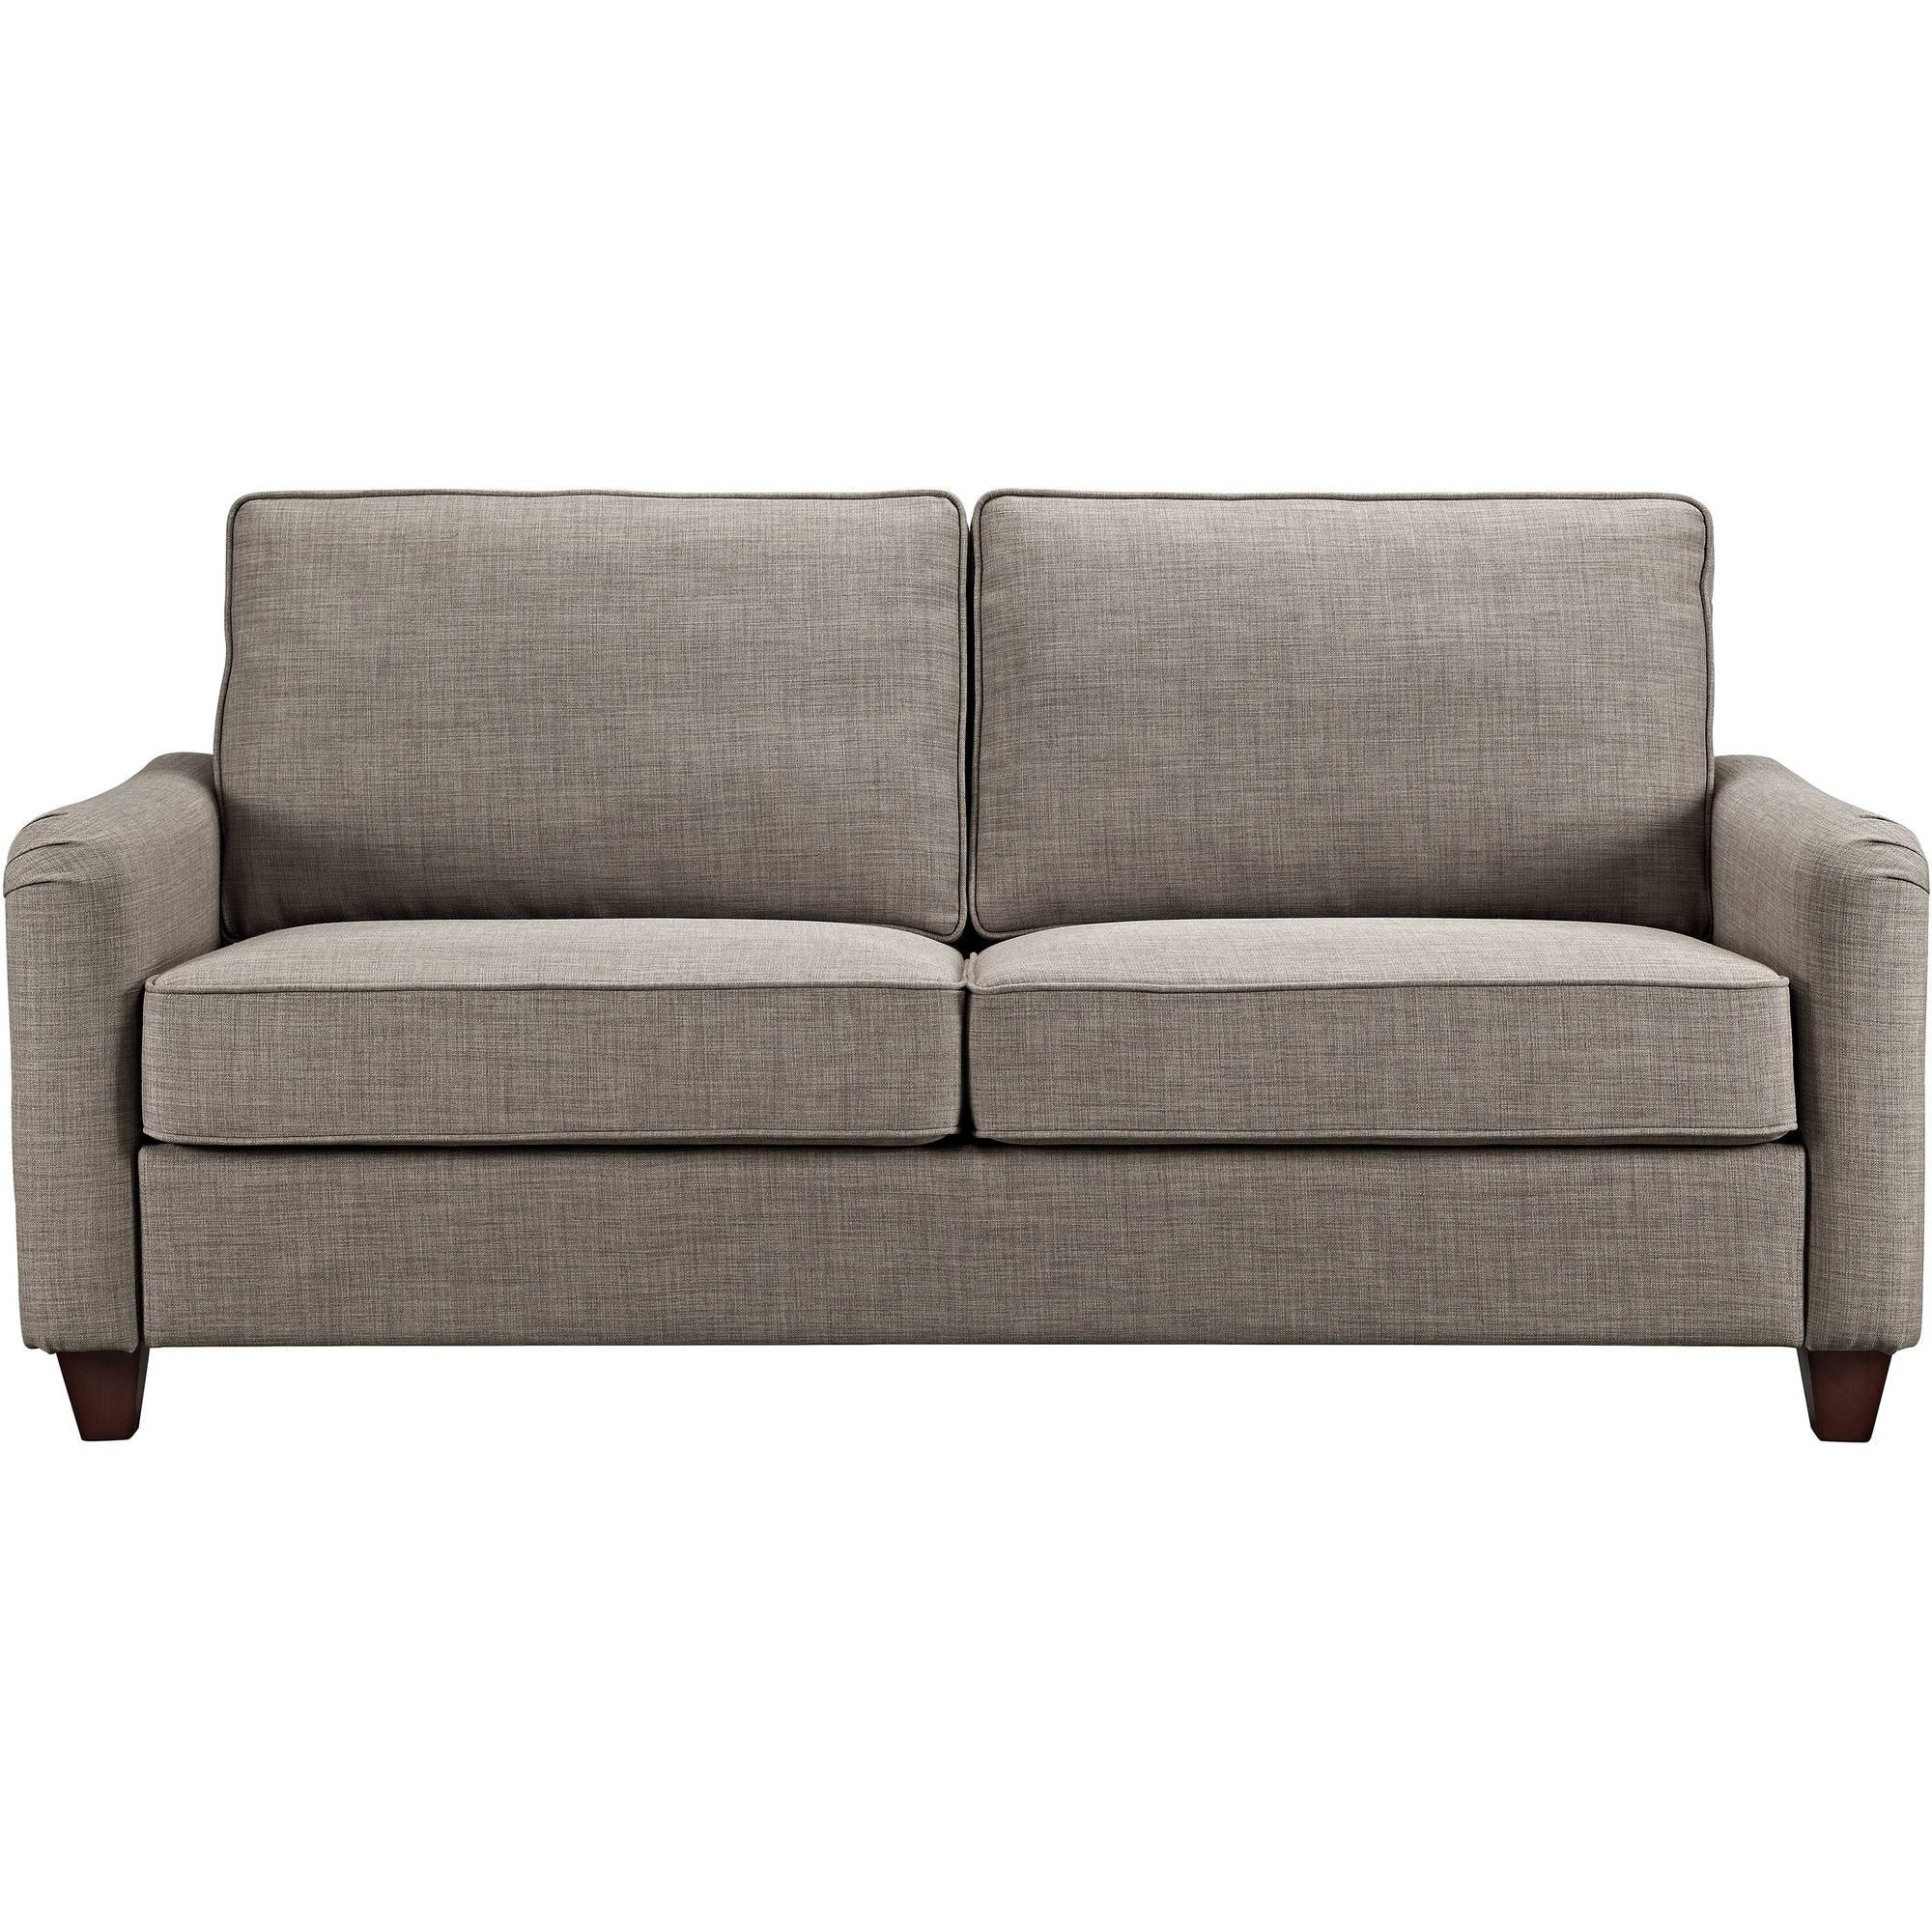 Living Room Furniture For Living Room Sofa Chairs (View 12 of 20)